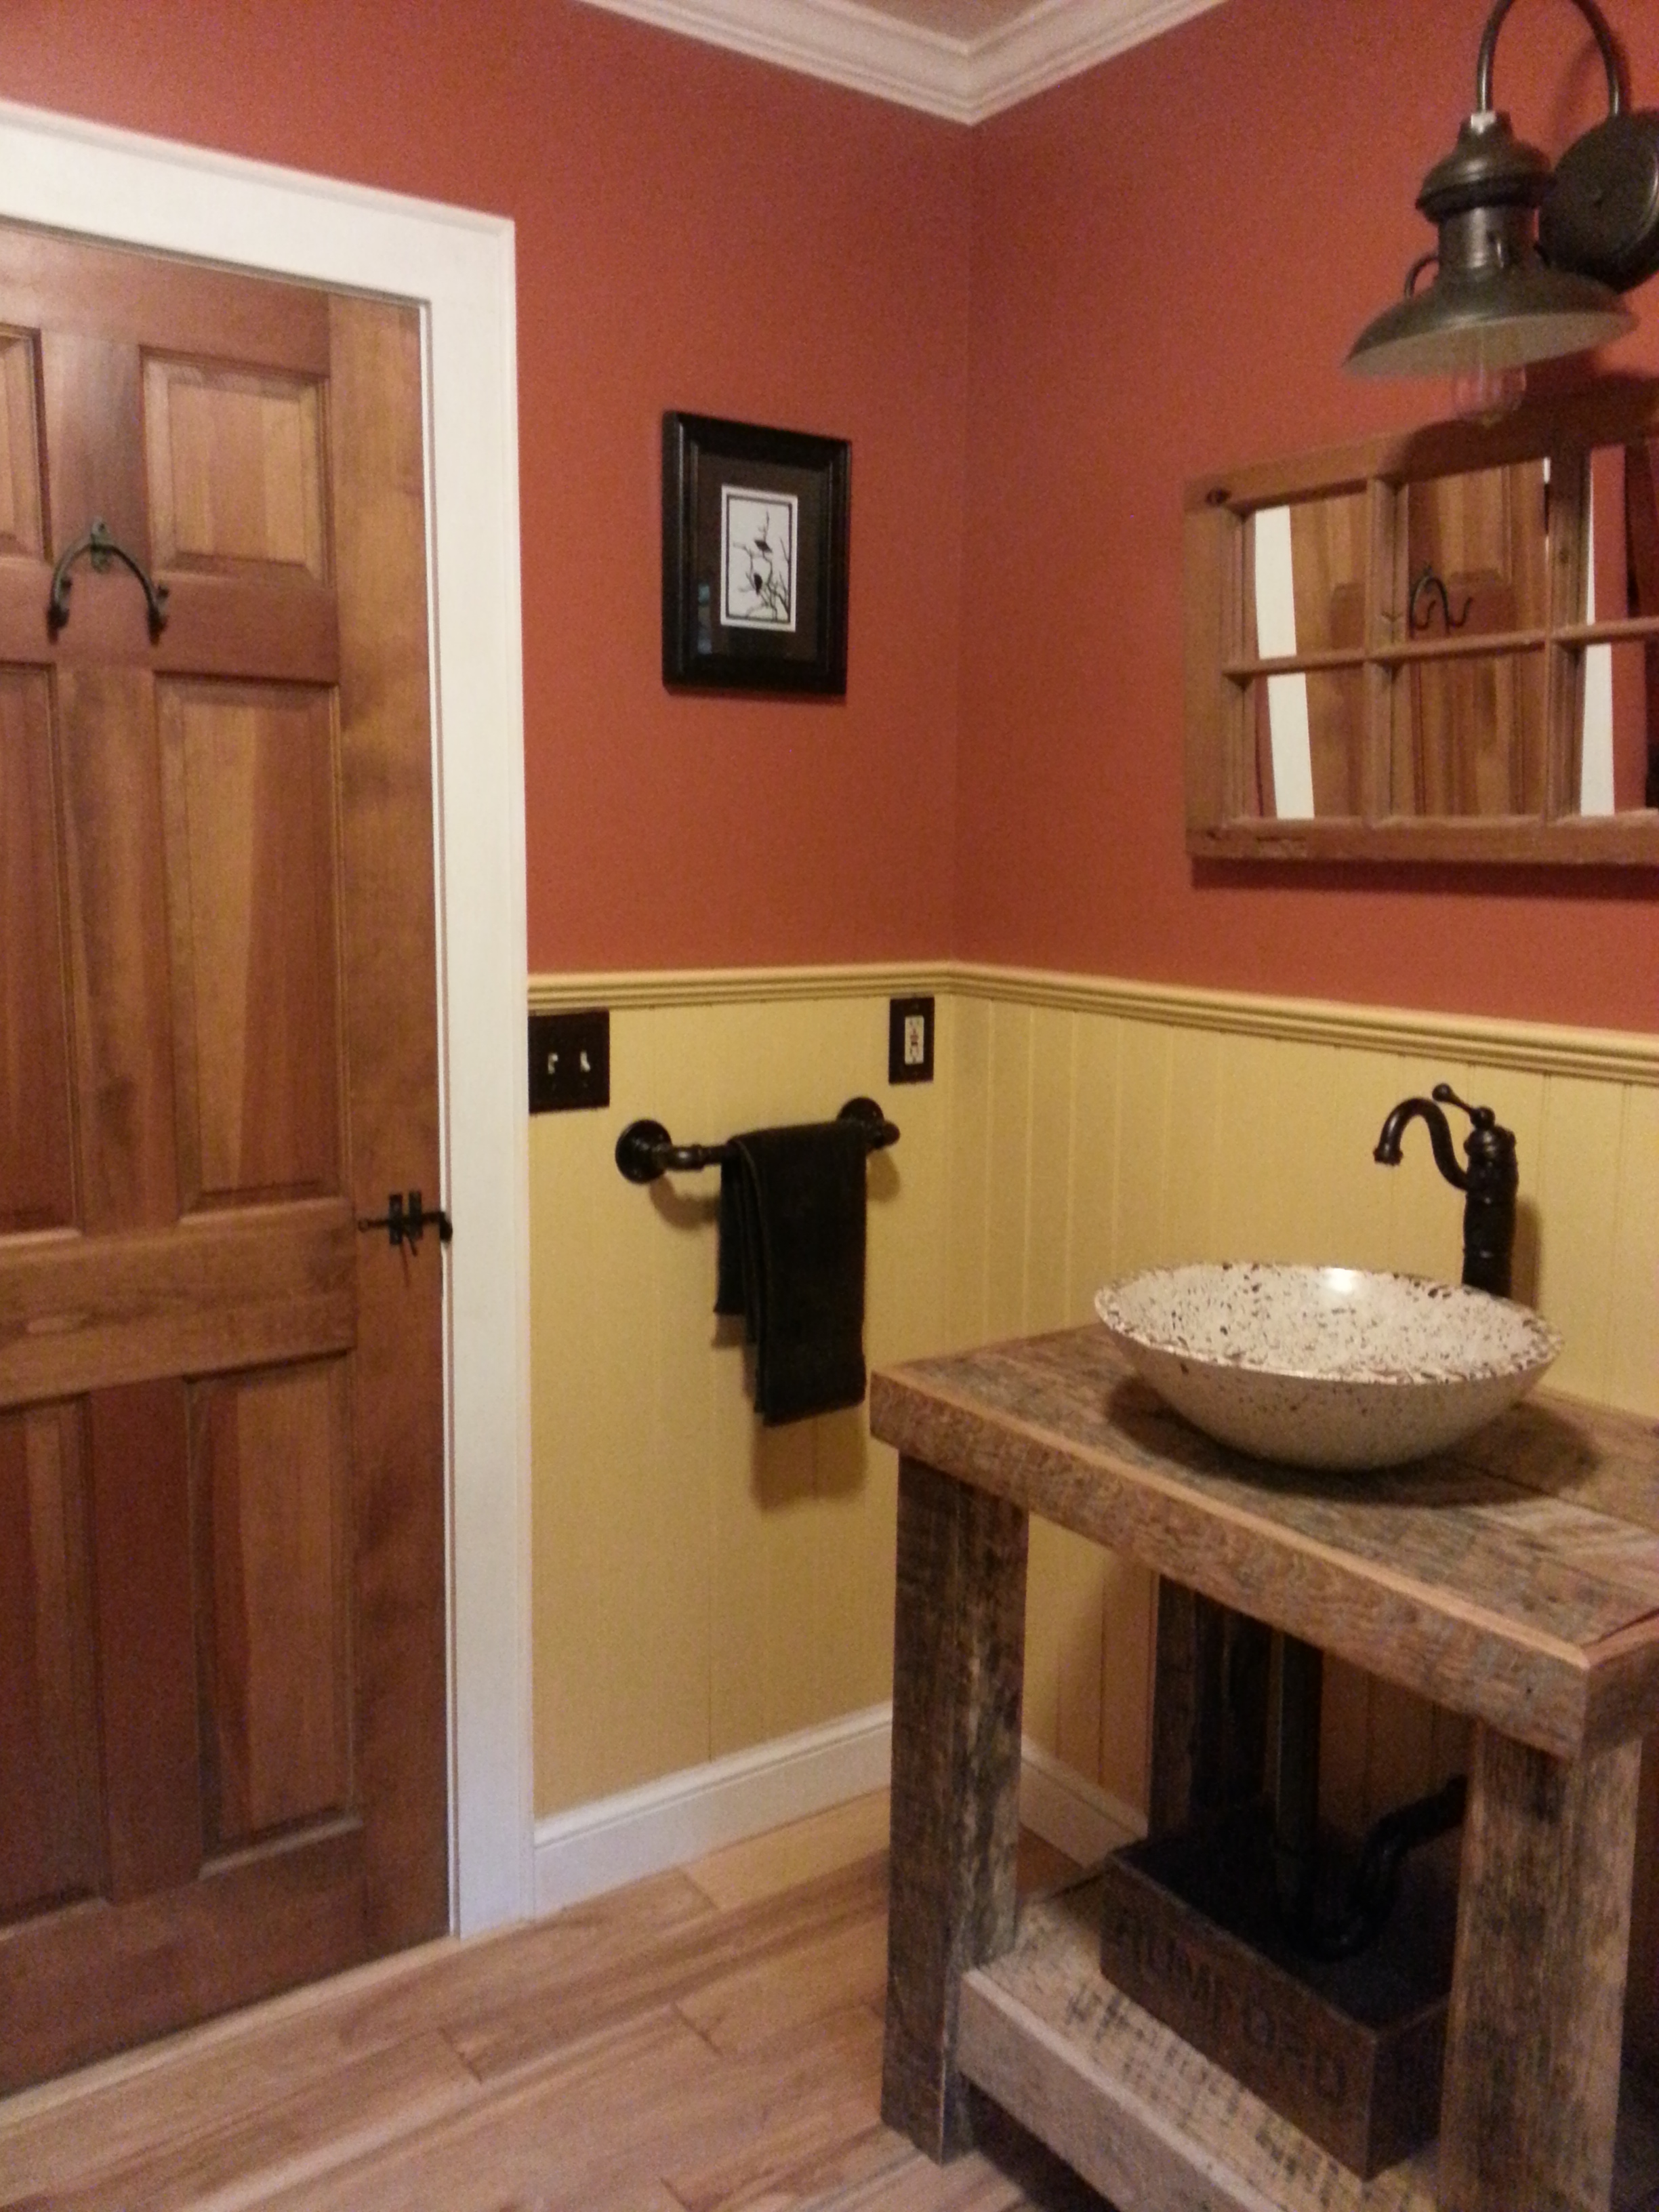 Barn Wall Sconce Adds A Touch Of Country To Bathroom Remodel Blog